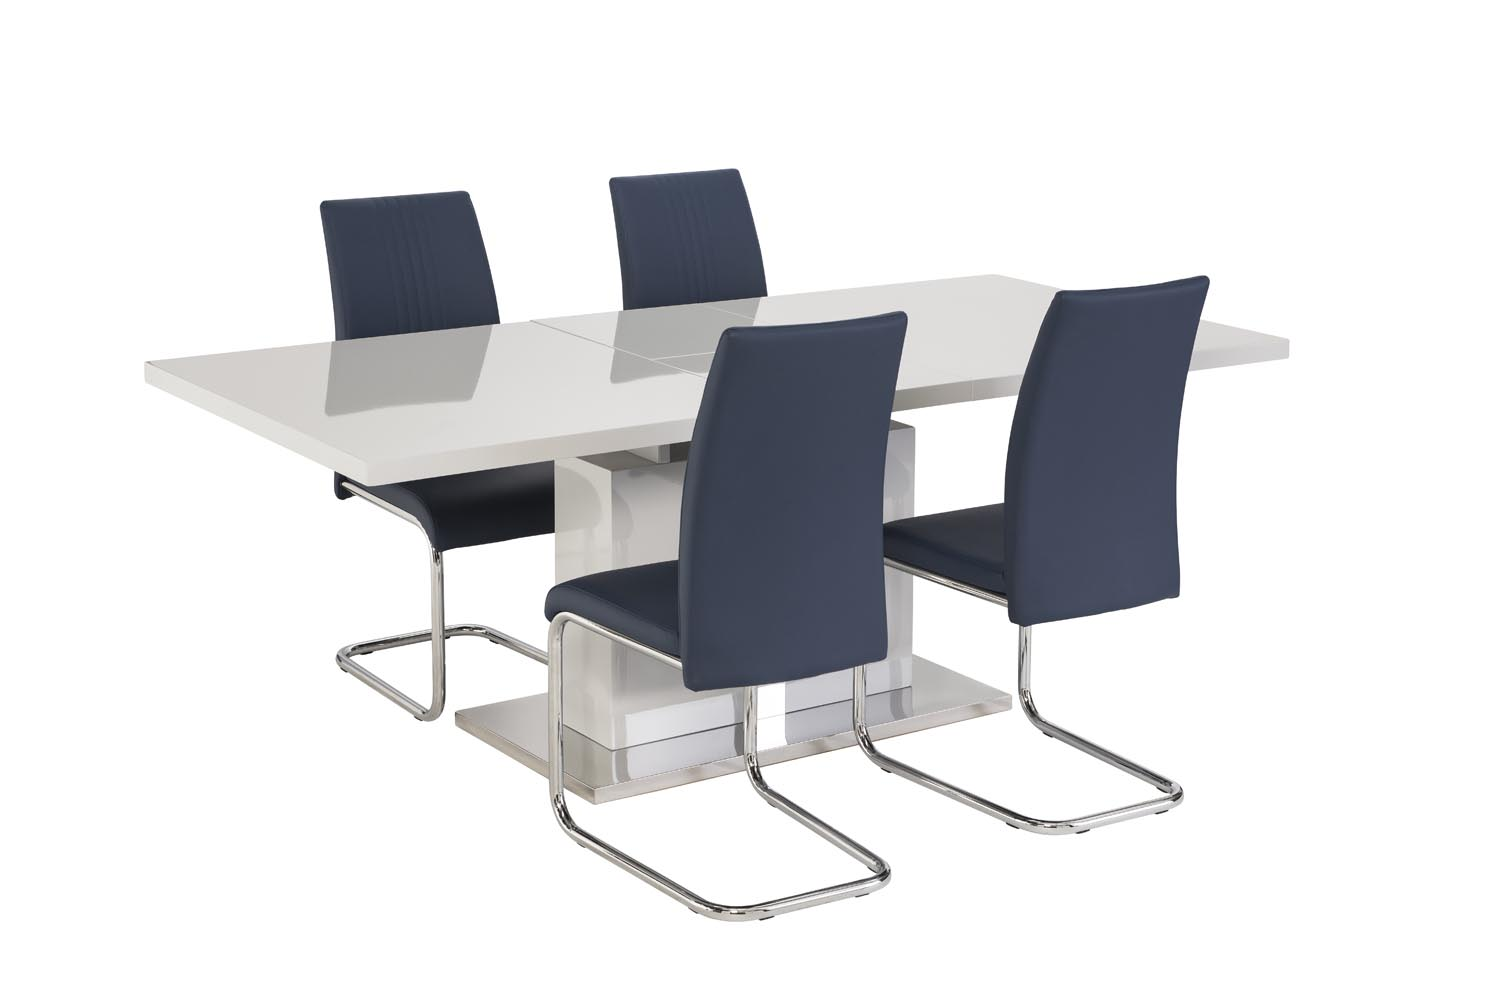 https://www.firstfurniture.co.uk/pub/media/catalog/product/b/o/bos01_mon02blue.jpg